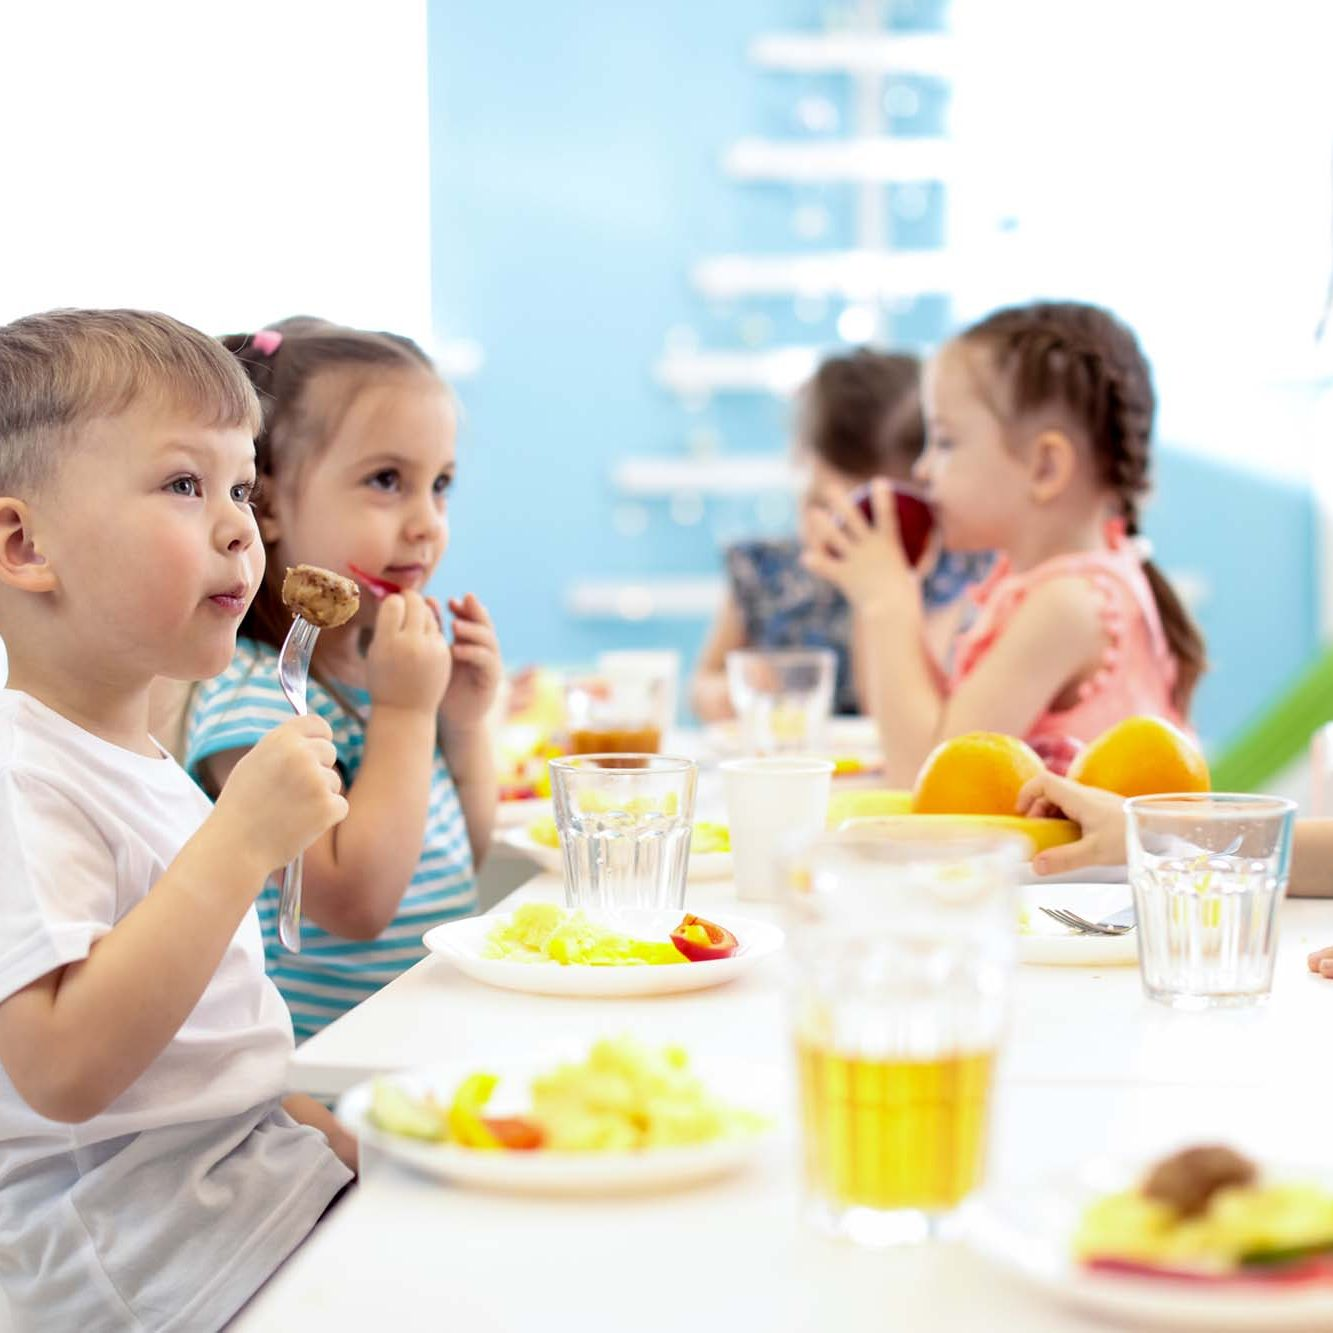 Group of kids have a lunch in day care centre. Children eating healthy food in kindergarten